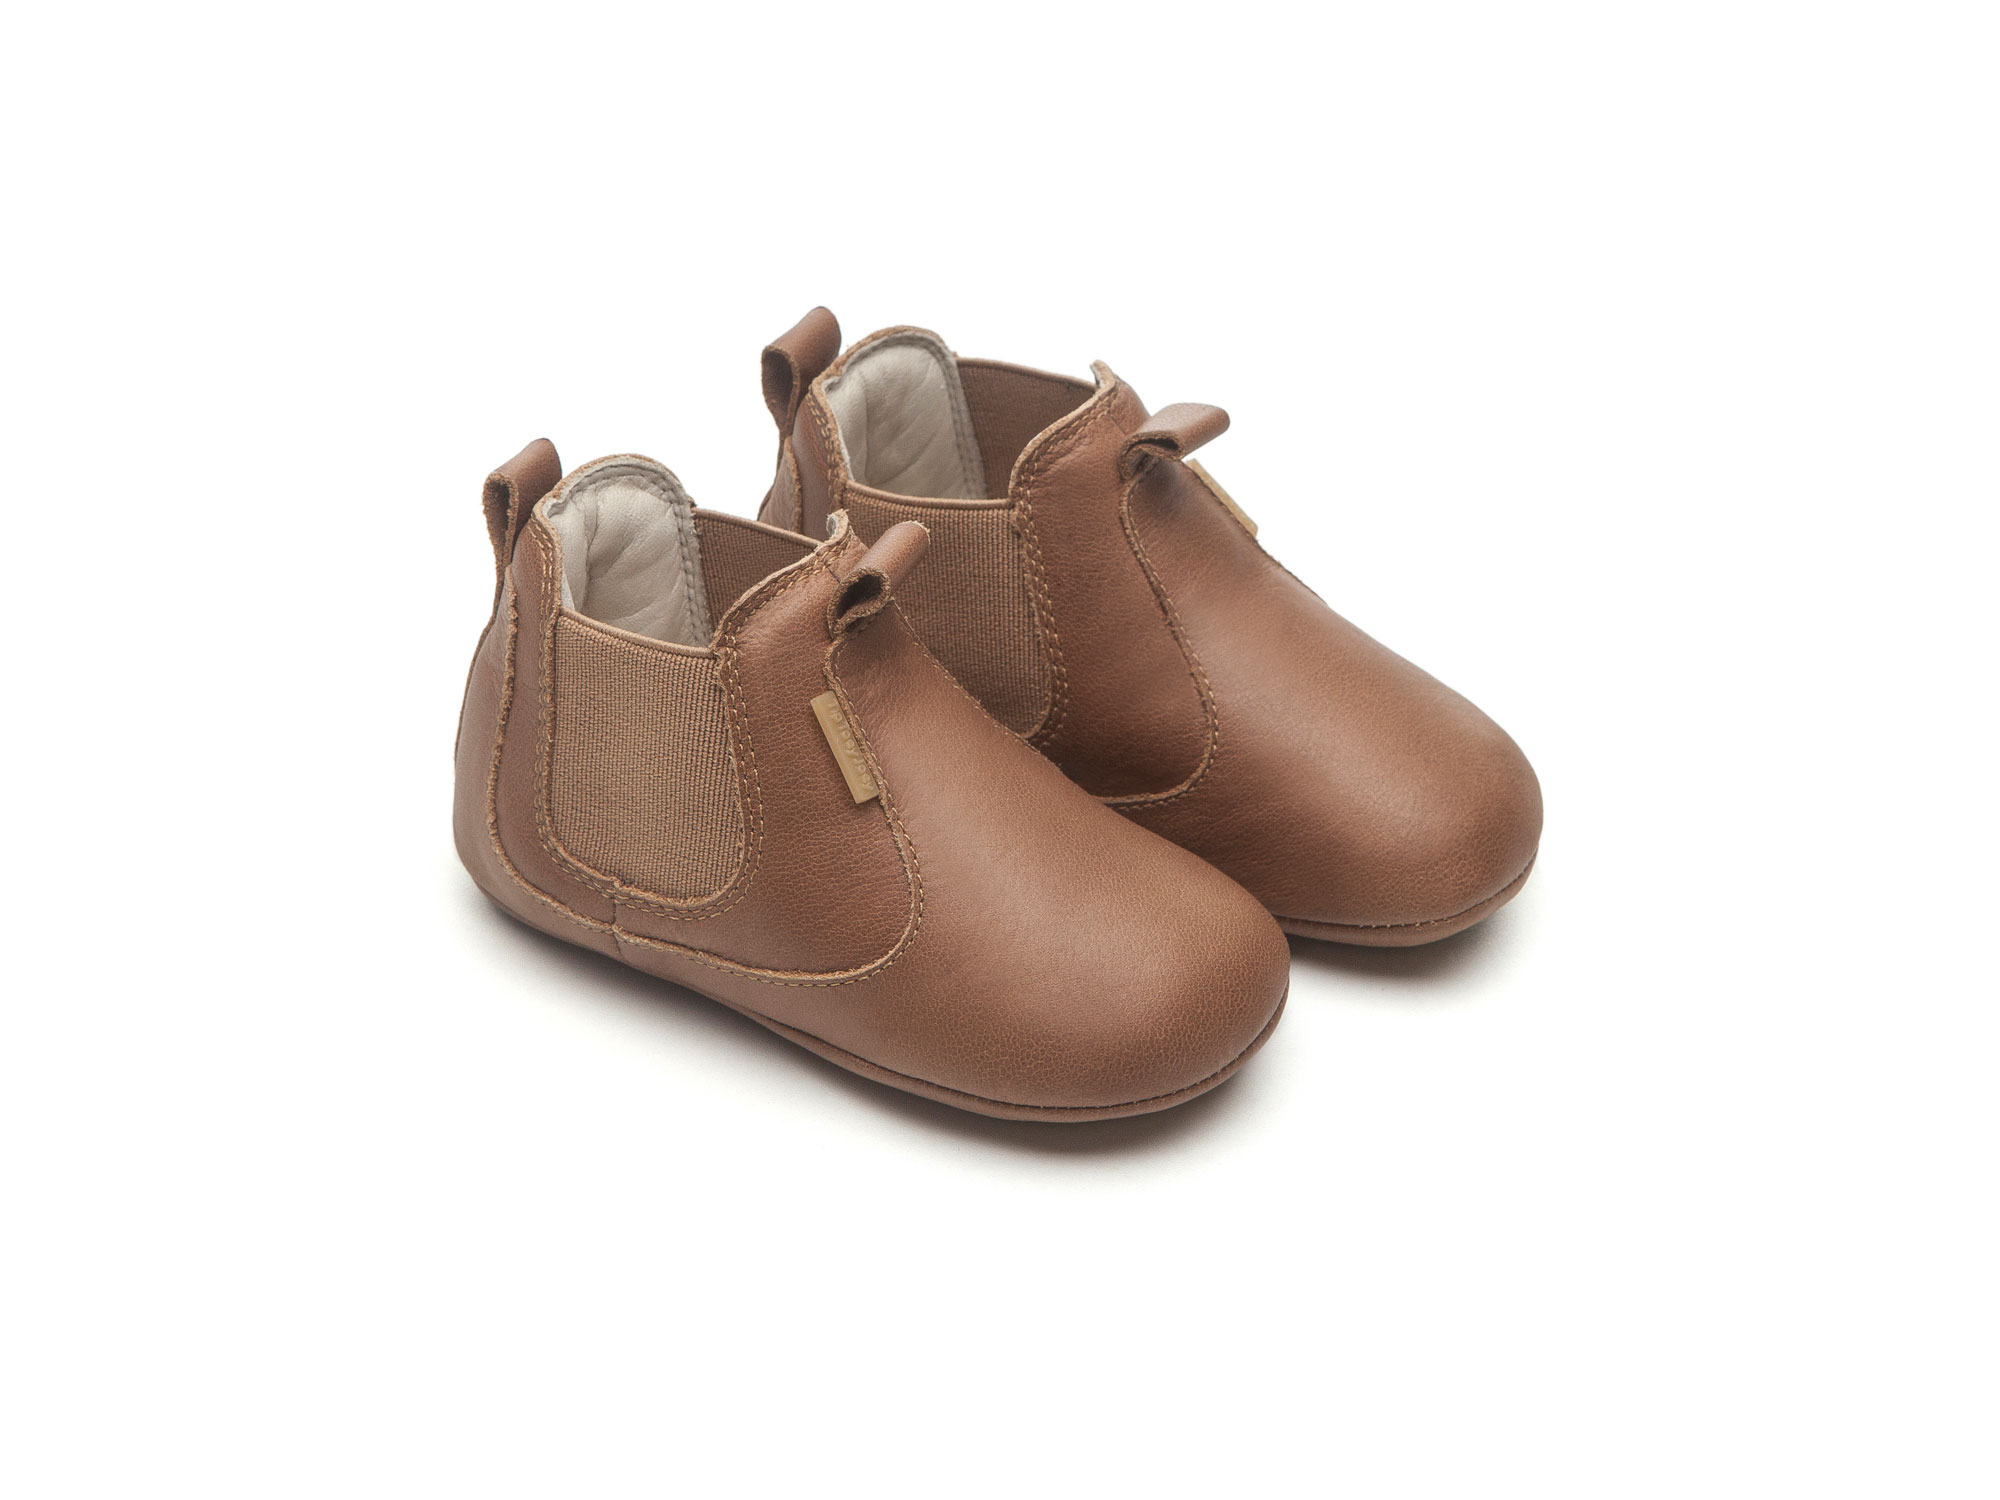 Boot Kicky Whisky  Baby for ages 0 to 2 years - 0